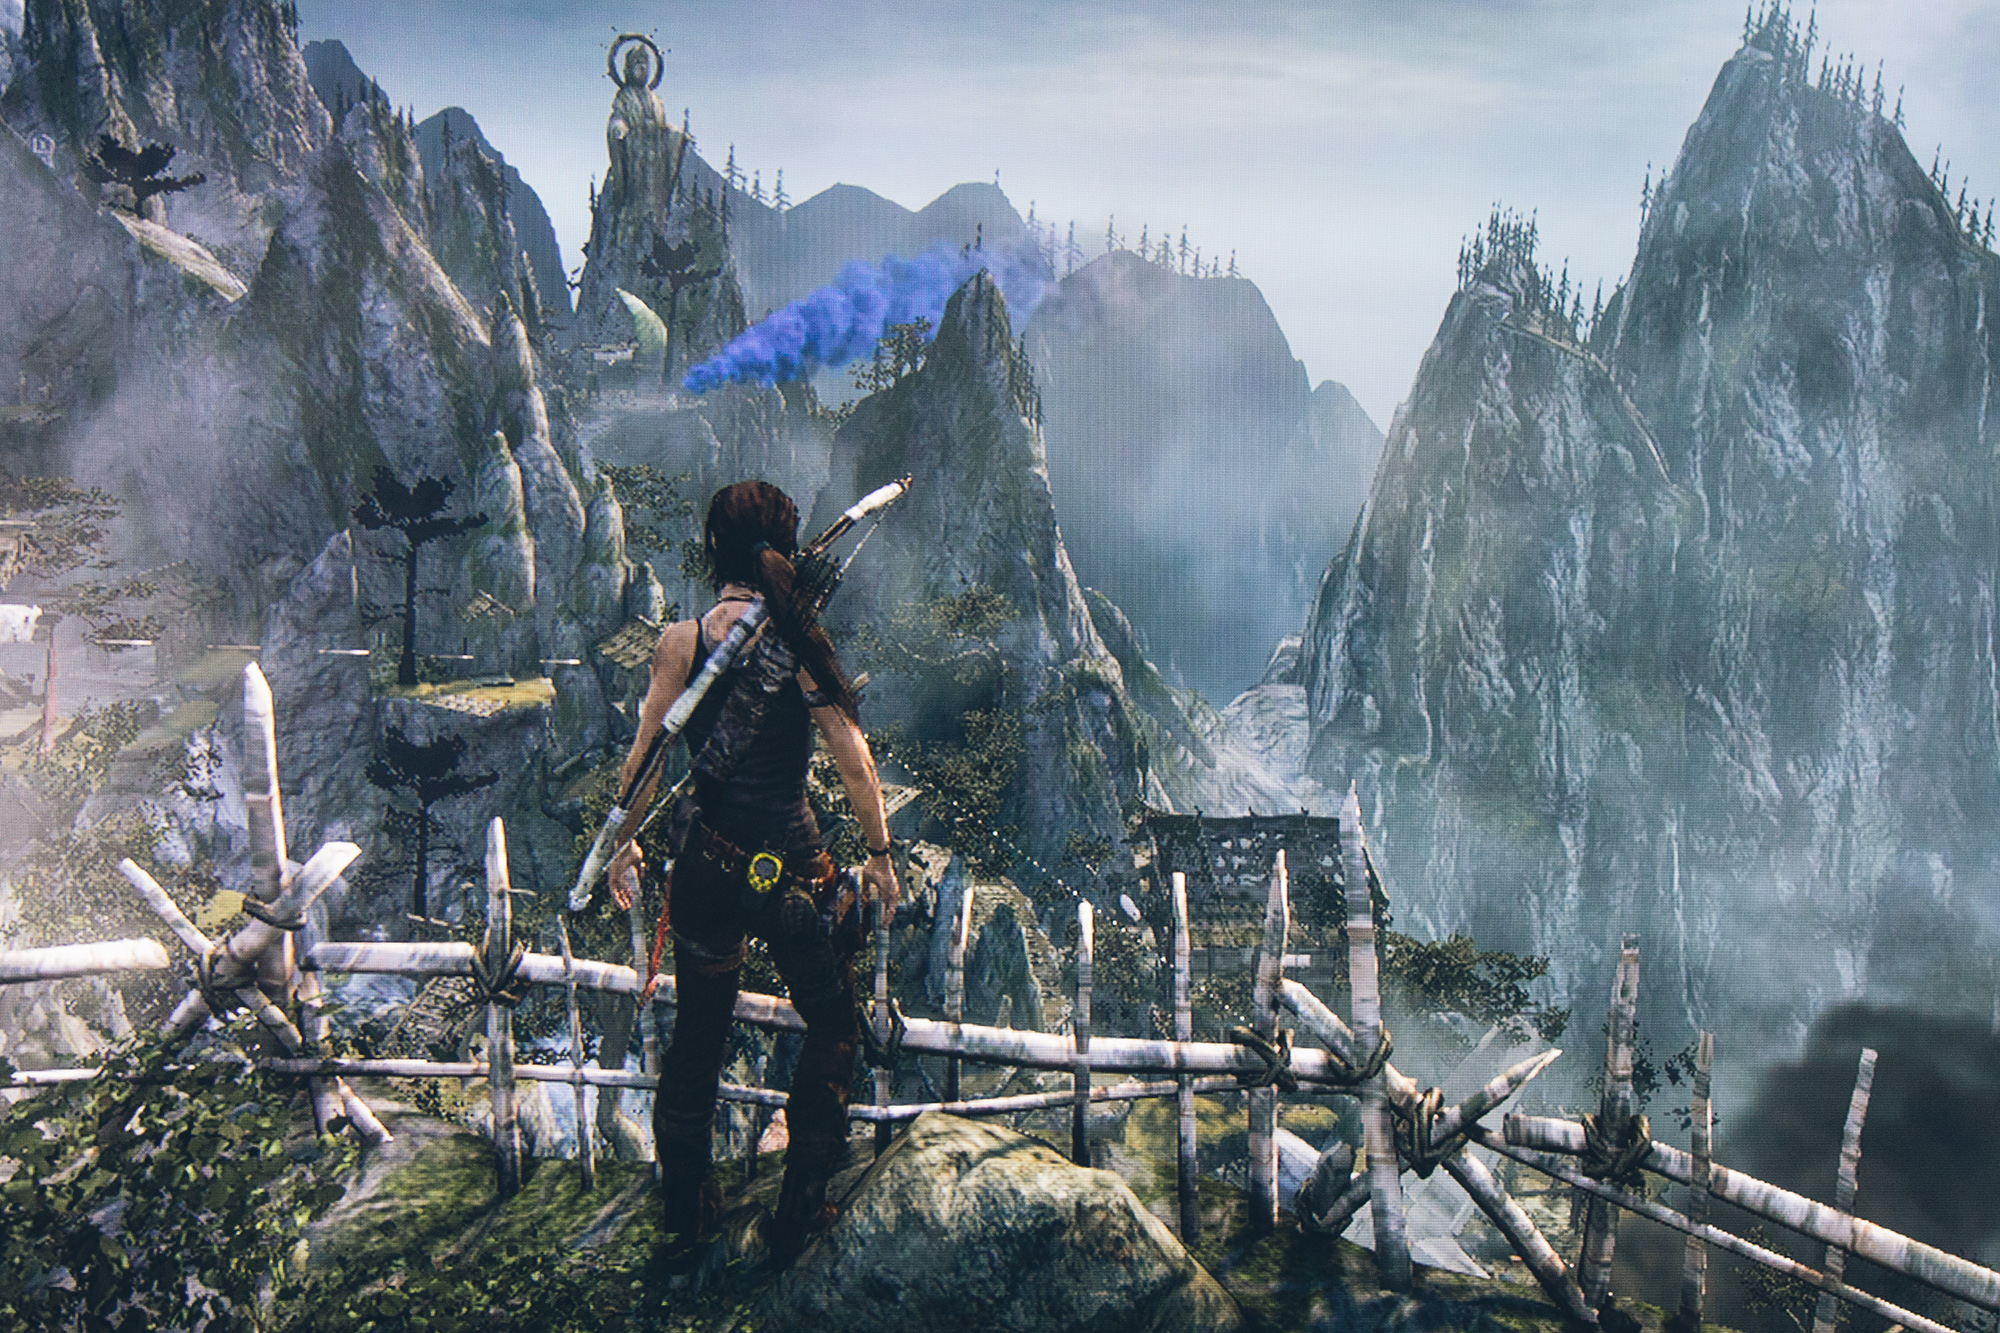 In this screenshot of an adventure third person videogame, a woman looks out over rugged mountains at the path ahead